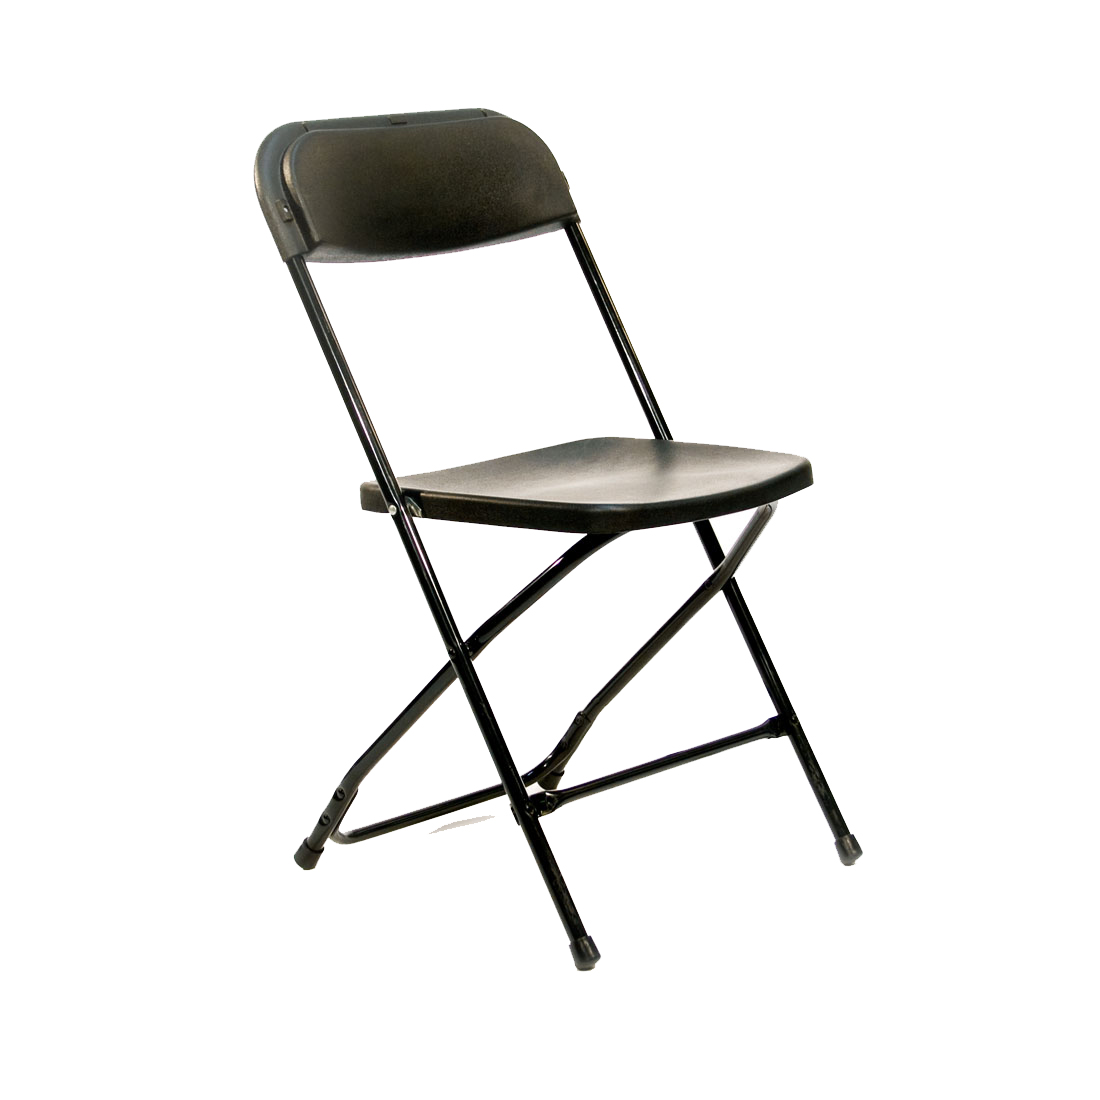 Black On Black Plastic Folding Chair Peter Corvallis Productions Tent Party Wedding Rentals Portland Rental Decor Portland